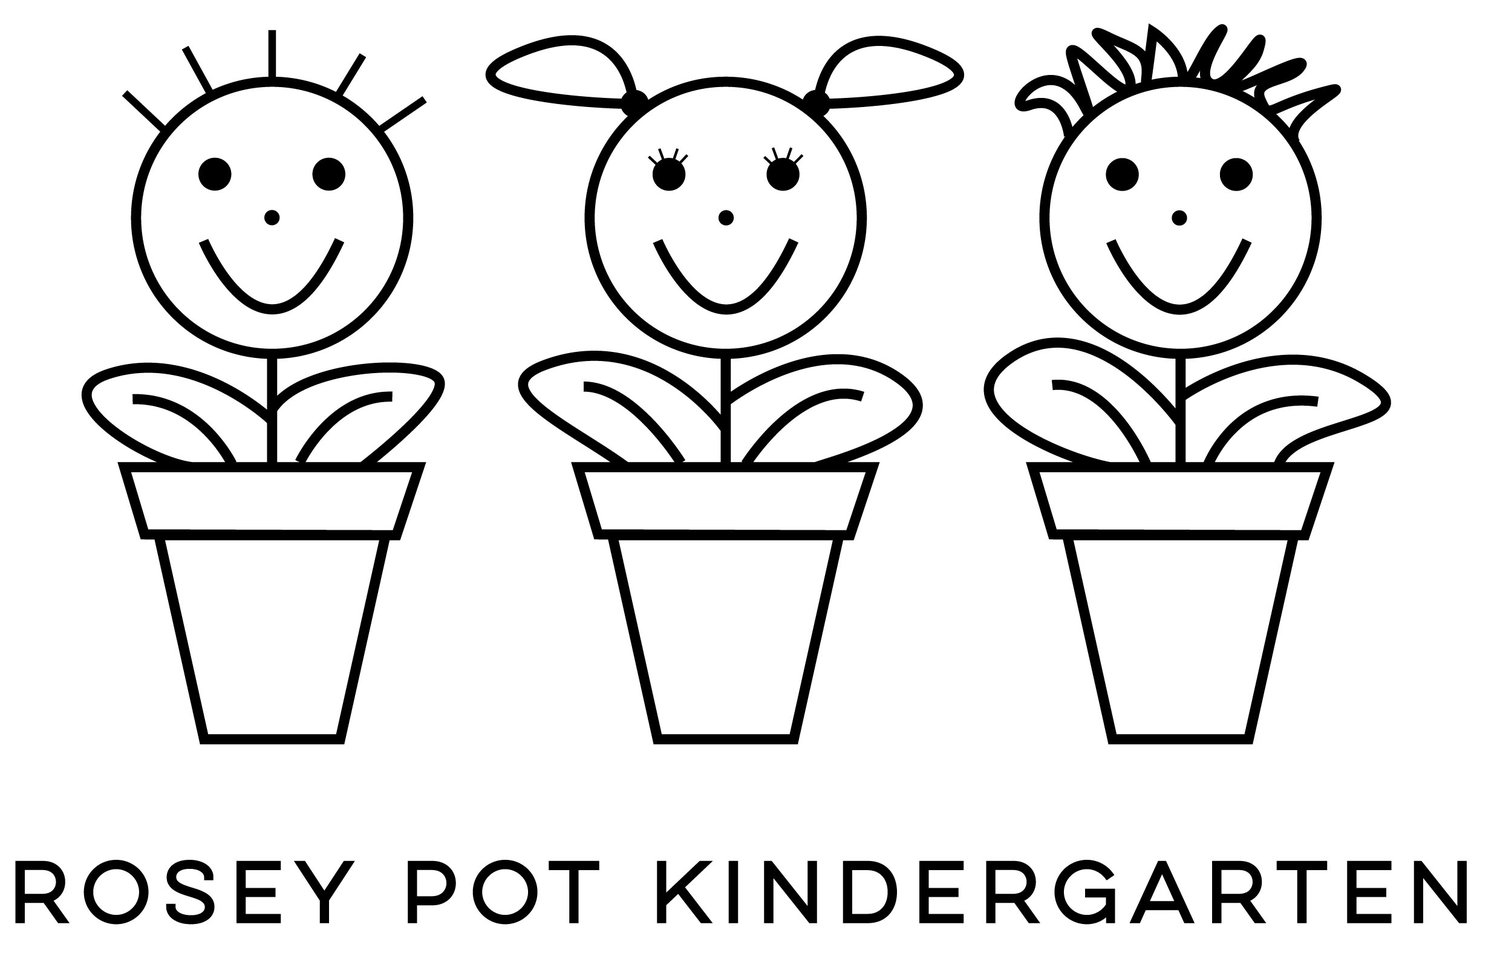 Rosey Pot Kindergarten